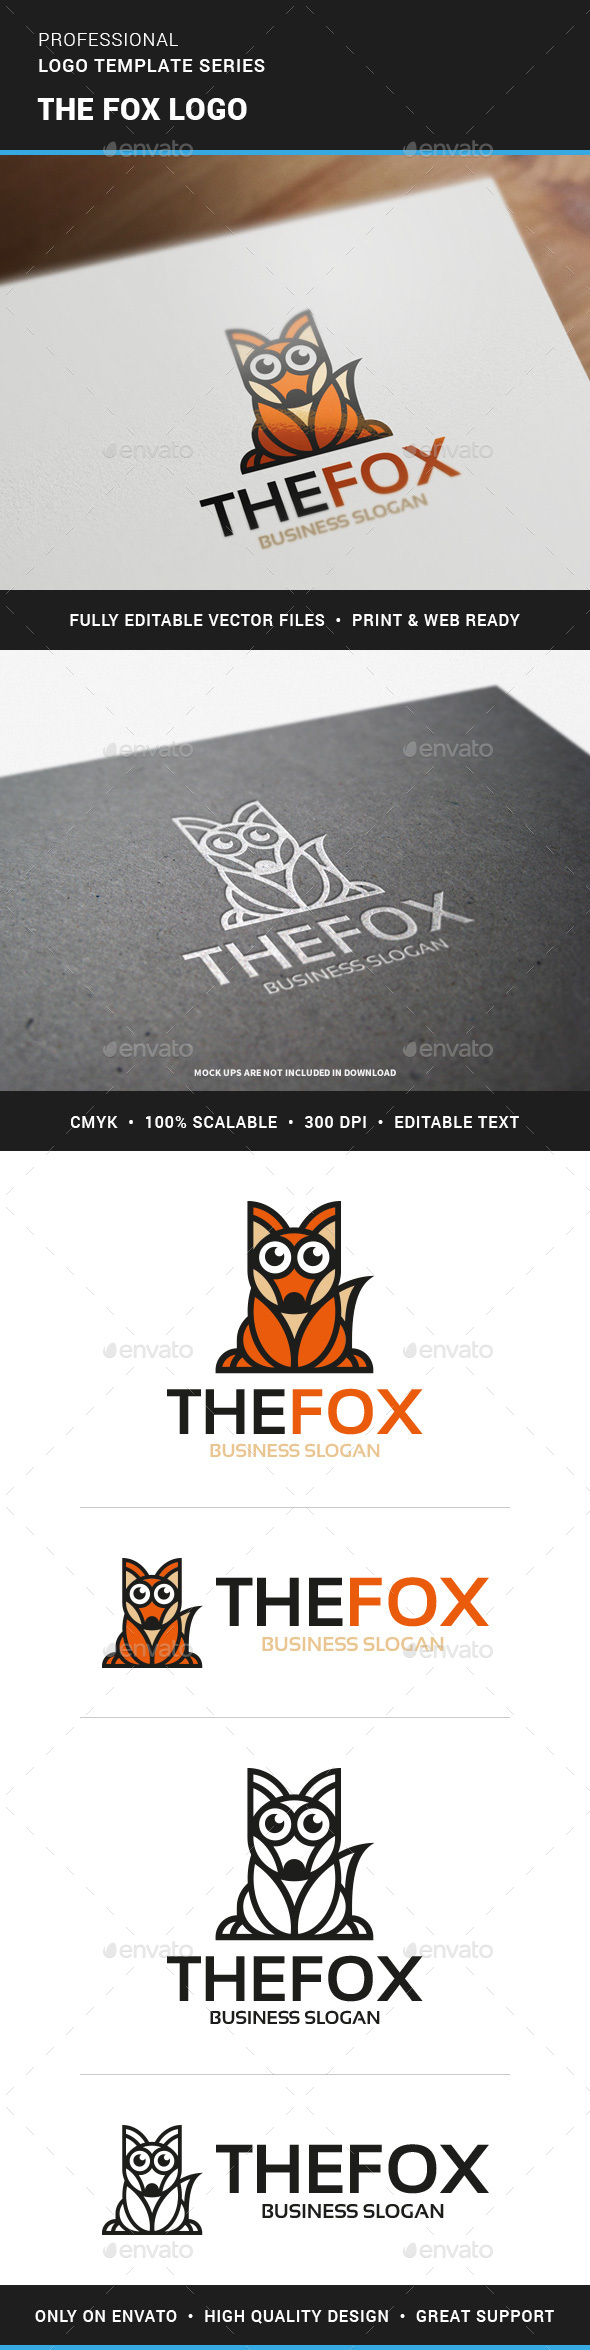 The Fox Logo Template